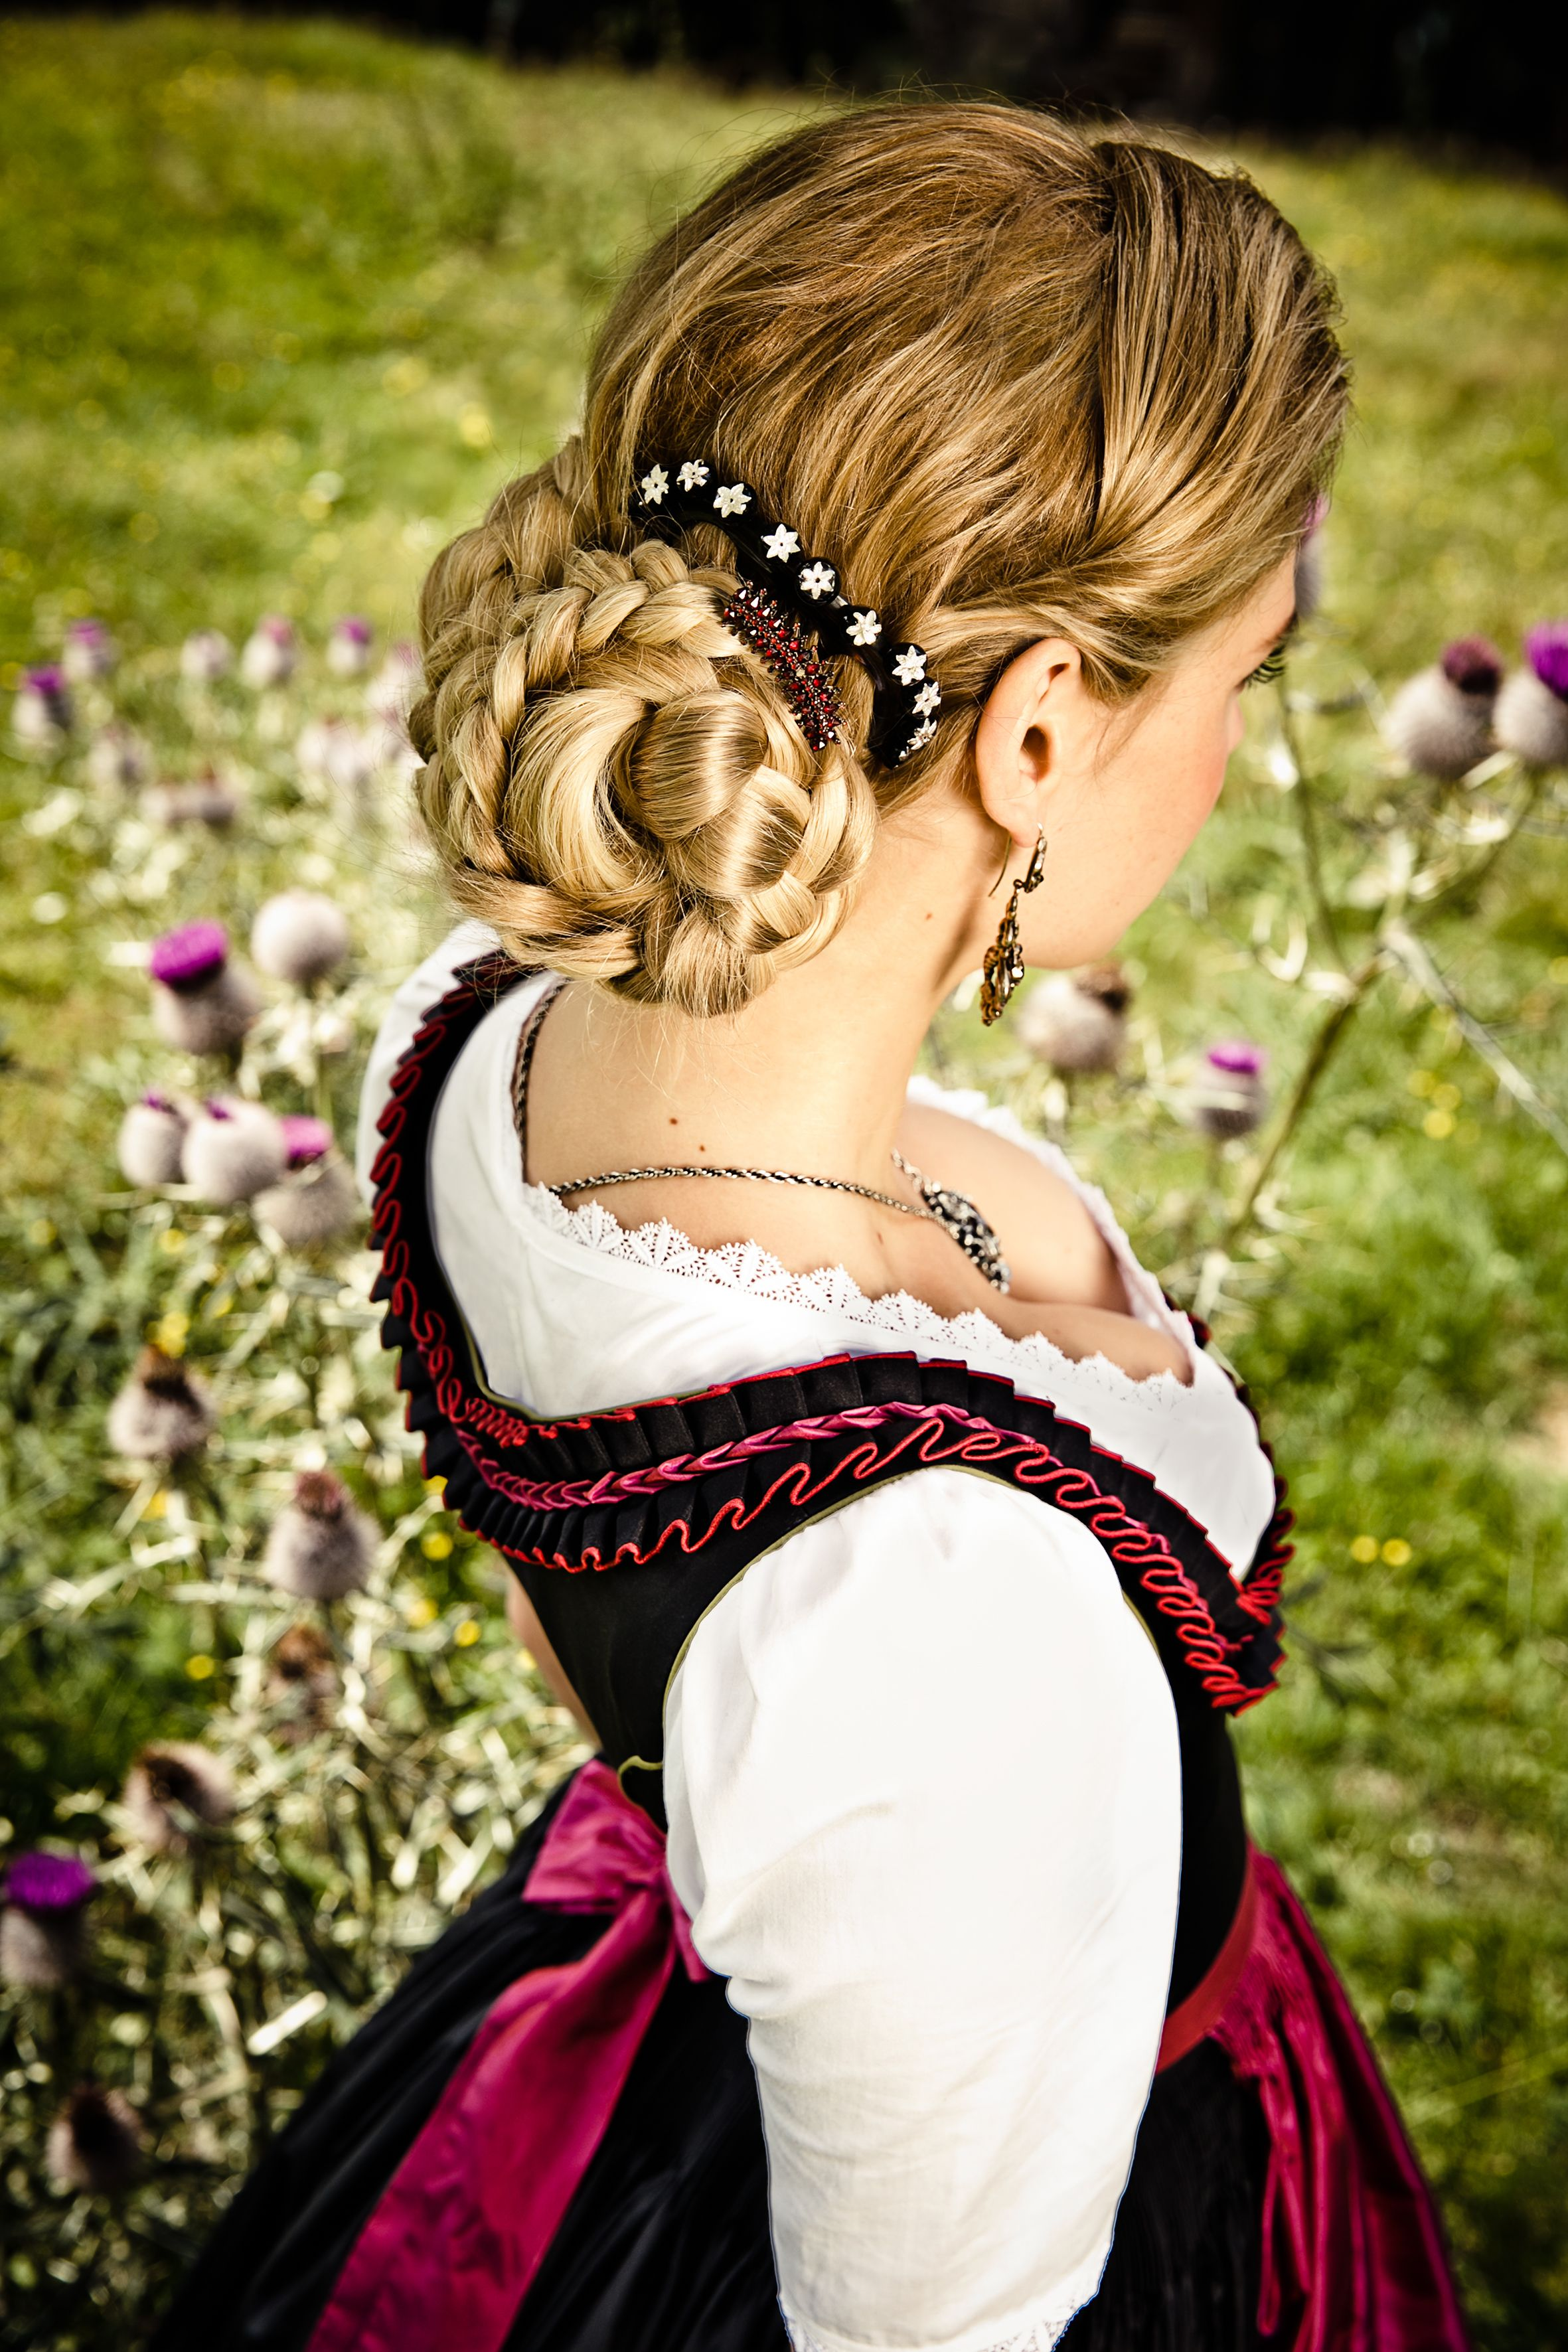 traditional german hairstyles fade haircut. Black Bedroom Furniture Sets. Home Design Ideas